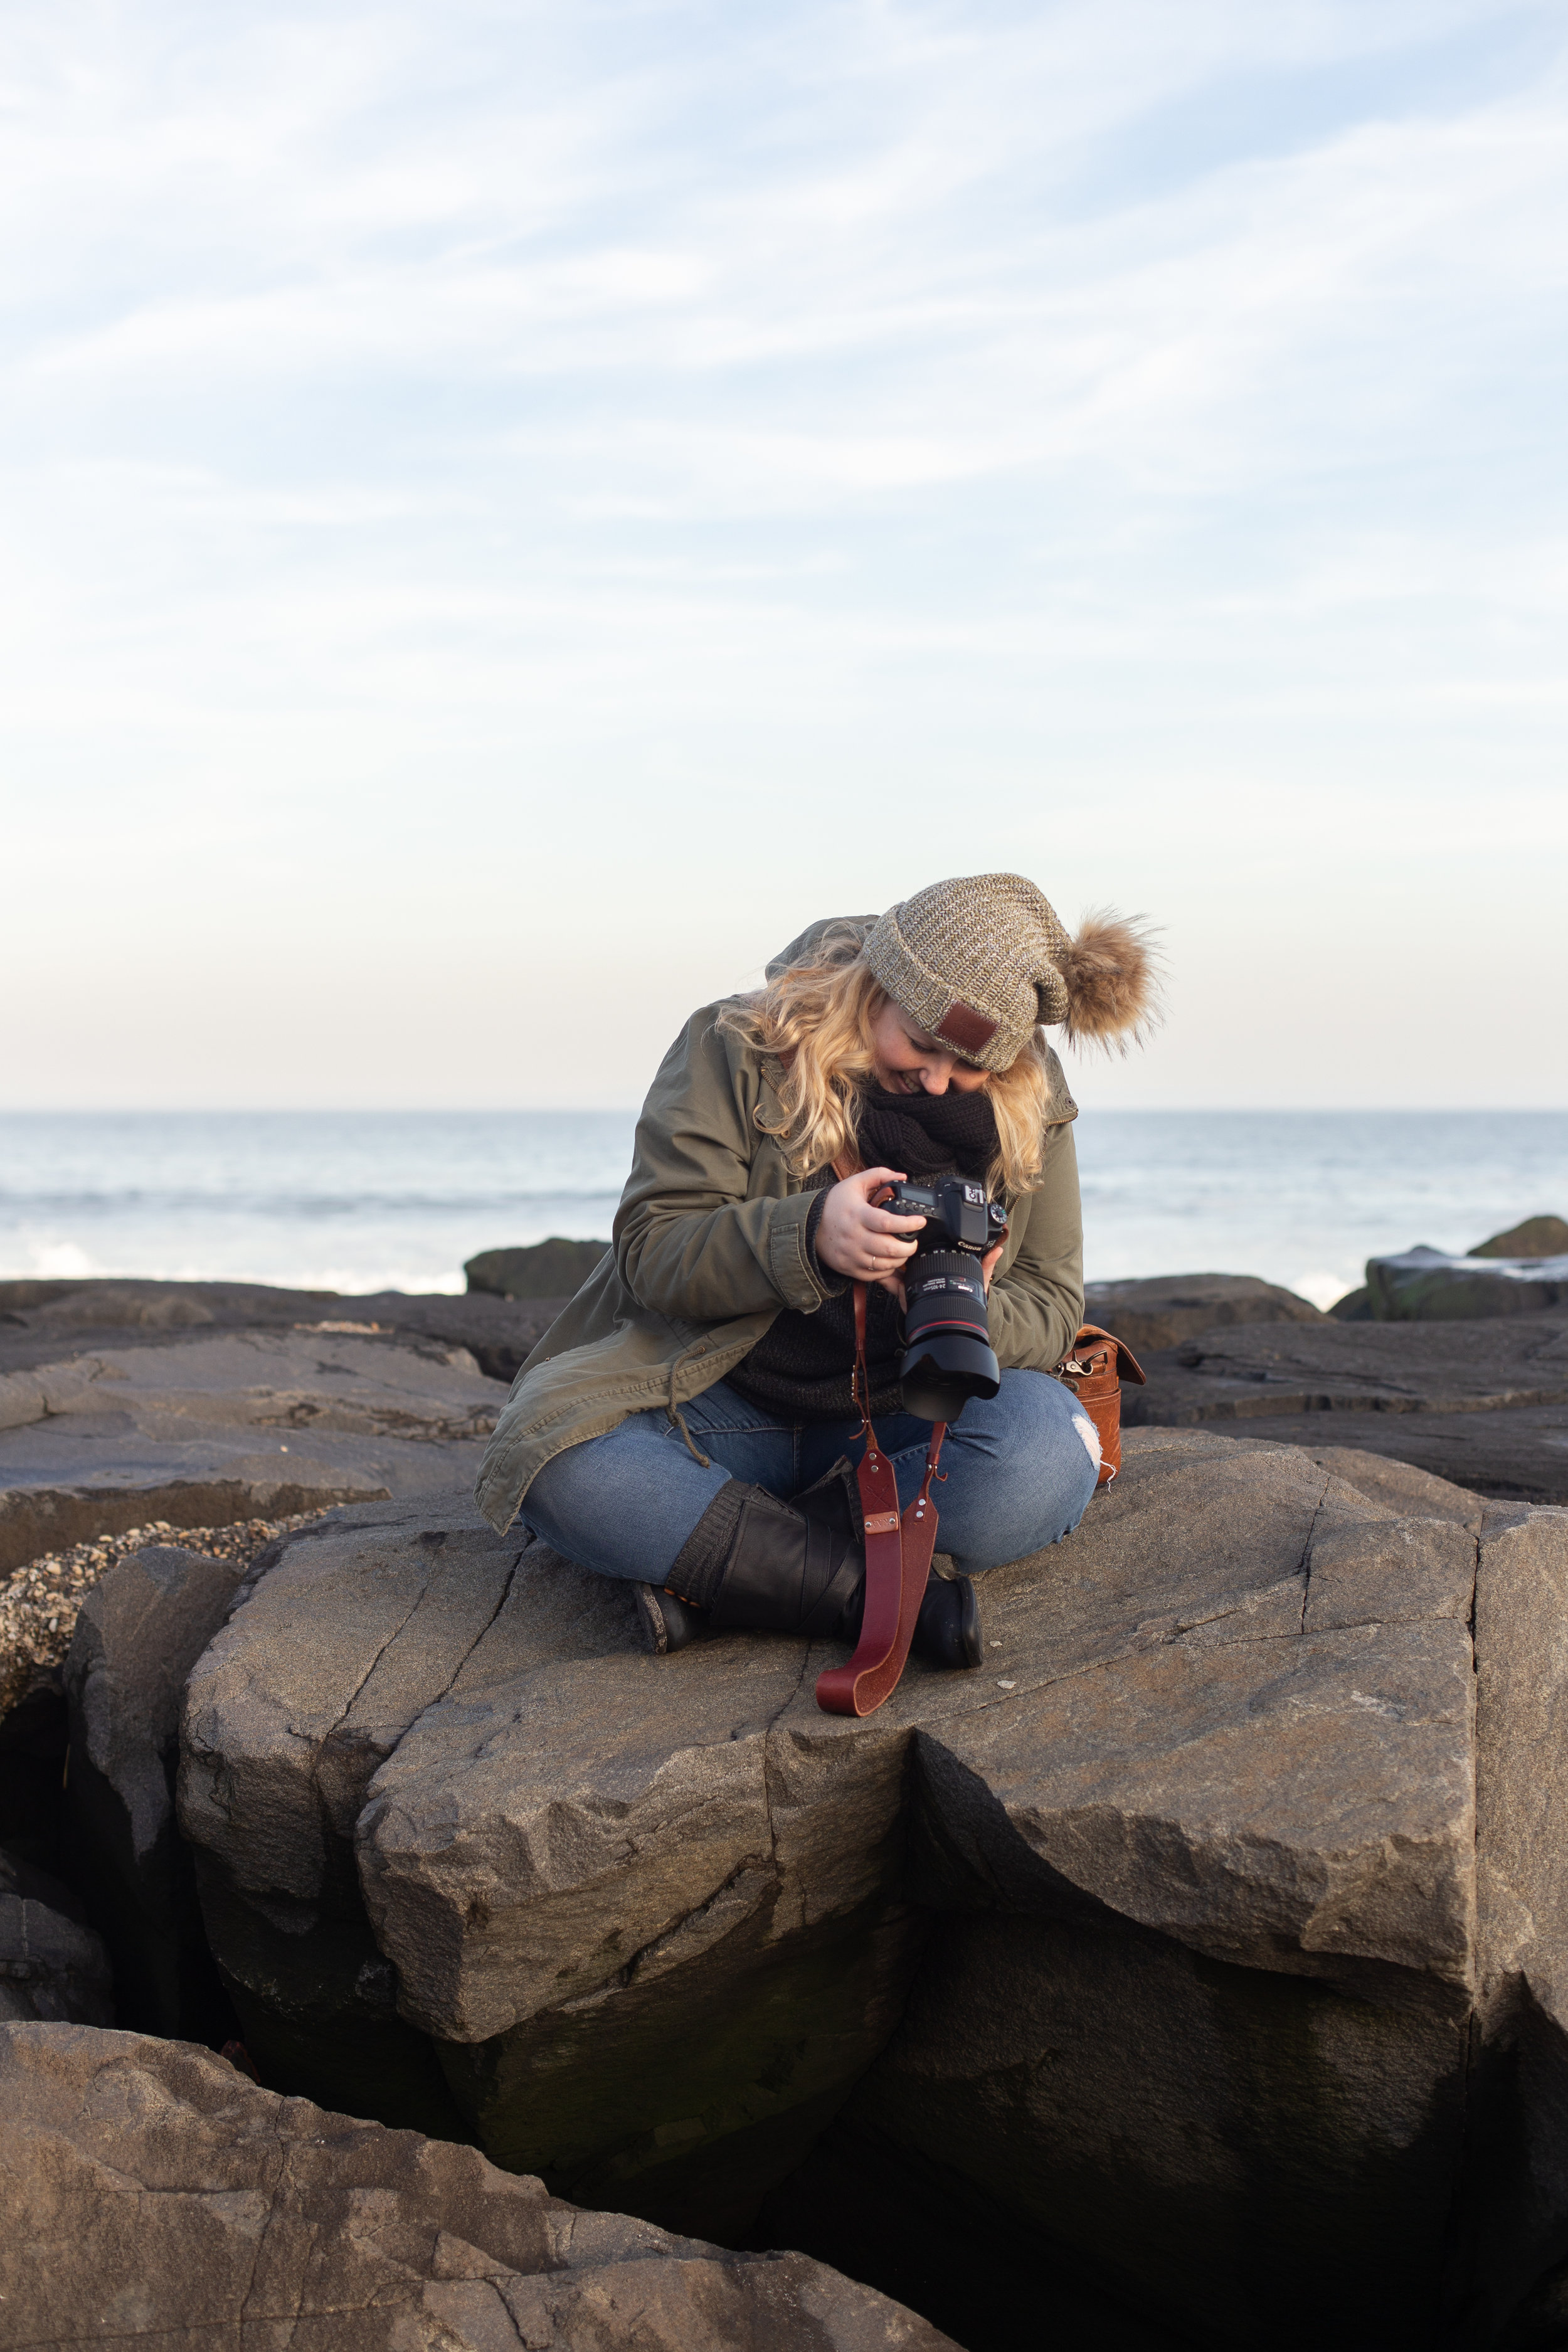 Woman sitting on rocks in Asbury Park, New Jersey. Photo by Kayleigh Ann Archbold.